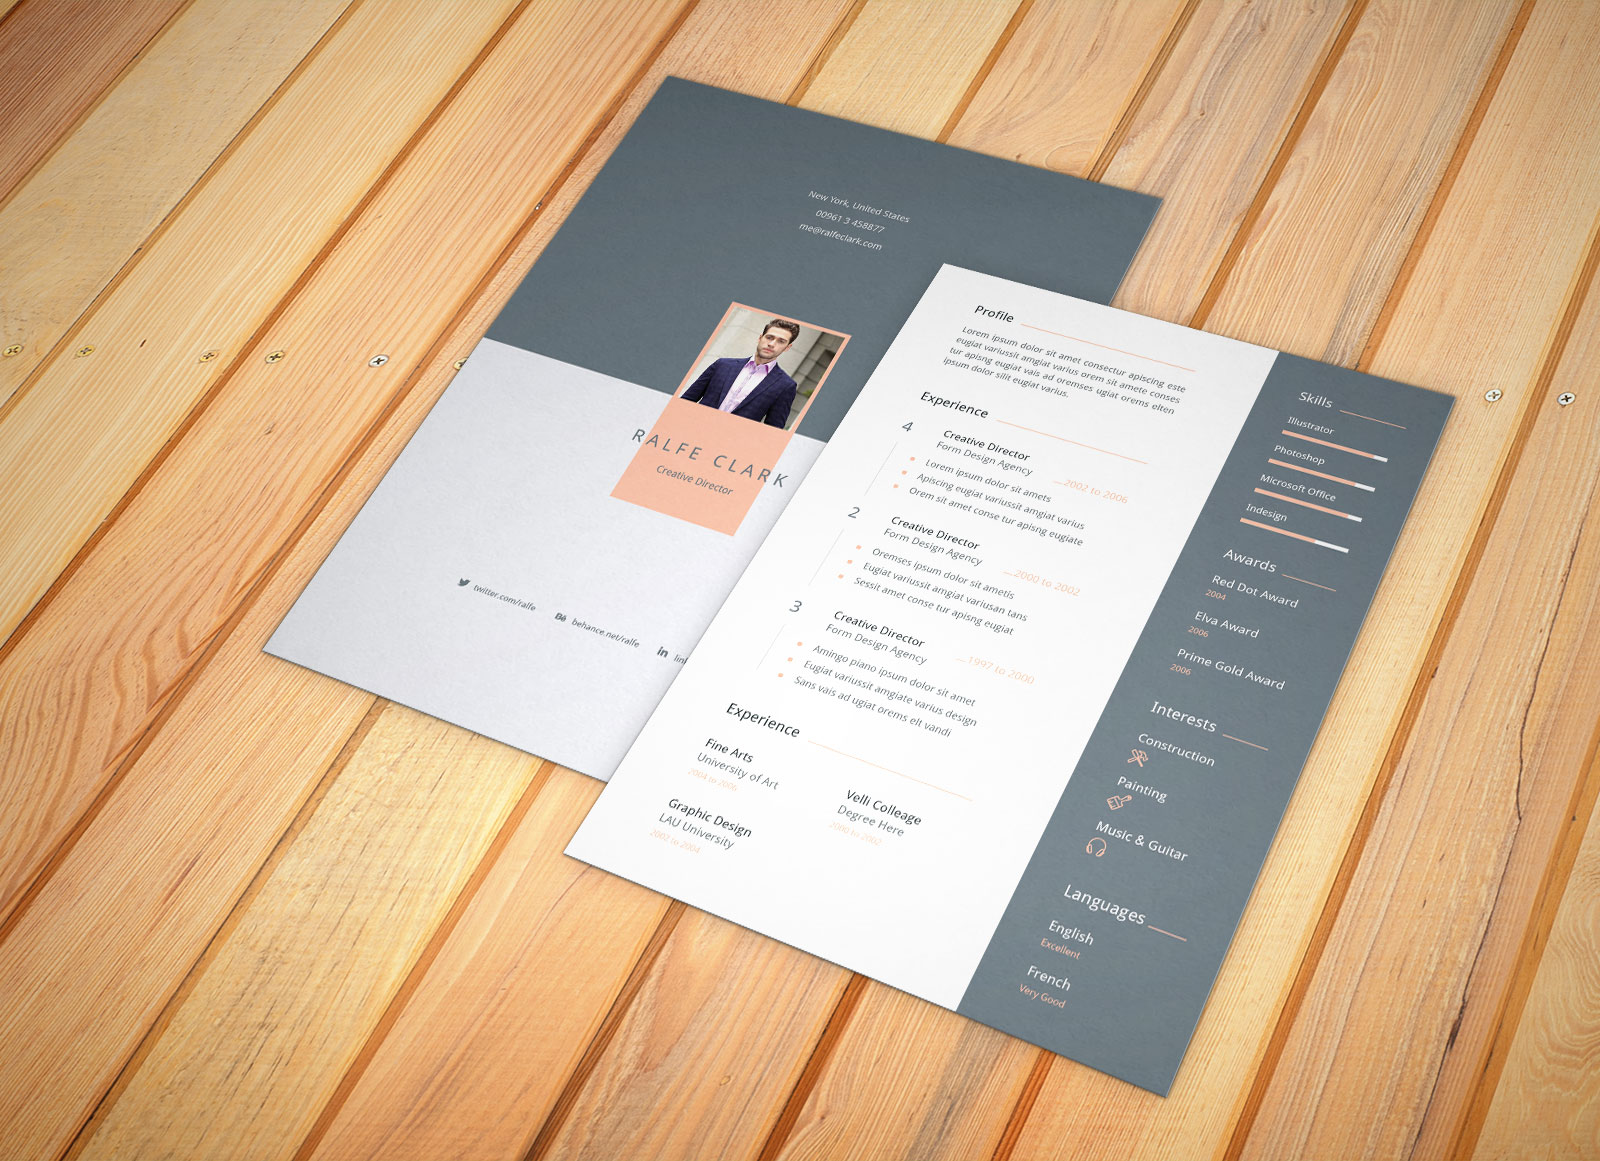 Free-Modern-Resume-Template--Cover-Letter-&-Portfolio-in-Ai-Format-001